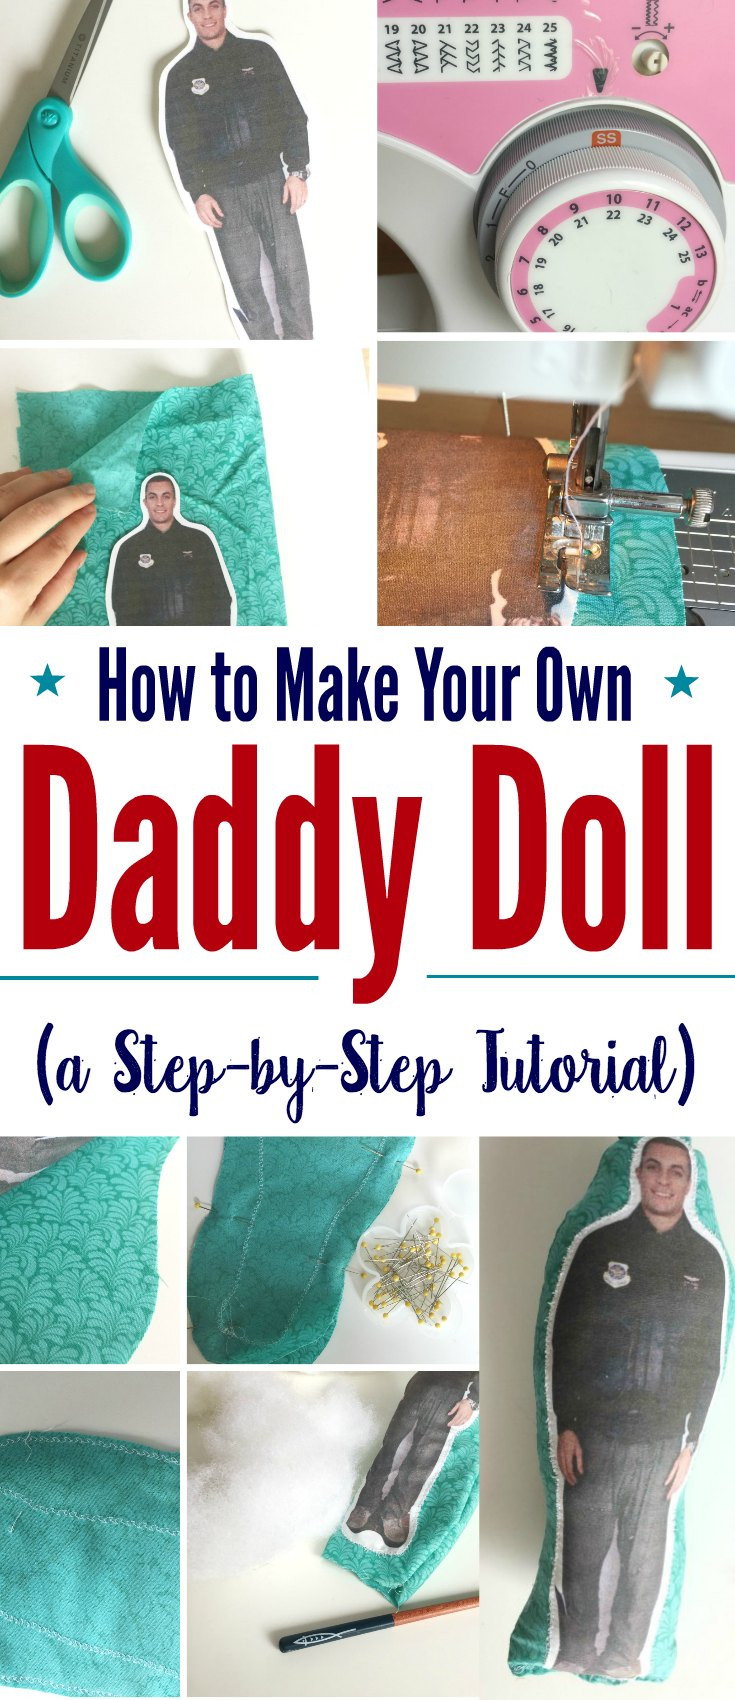 Best ideas about Kids Make Your Own . Save or Pin How to Make Your Own Daddy Doll for Military Kids A Now.